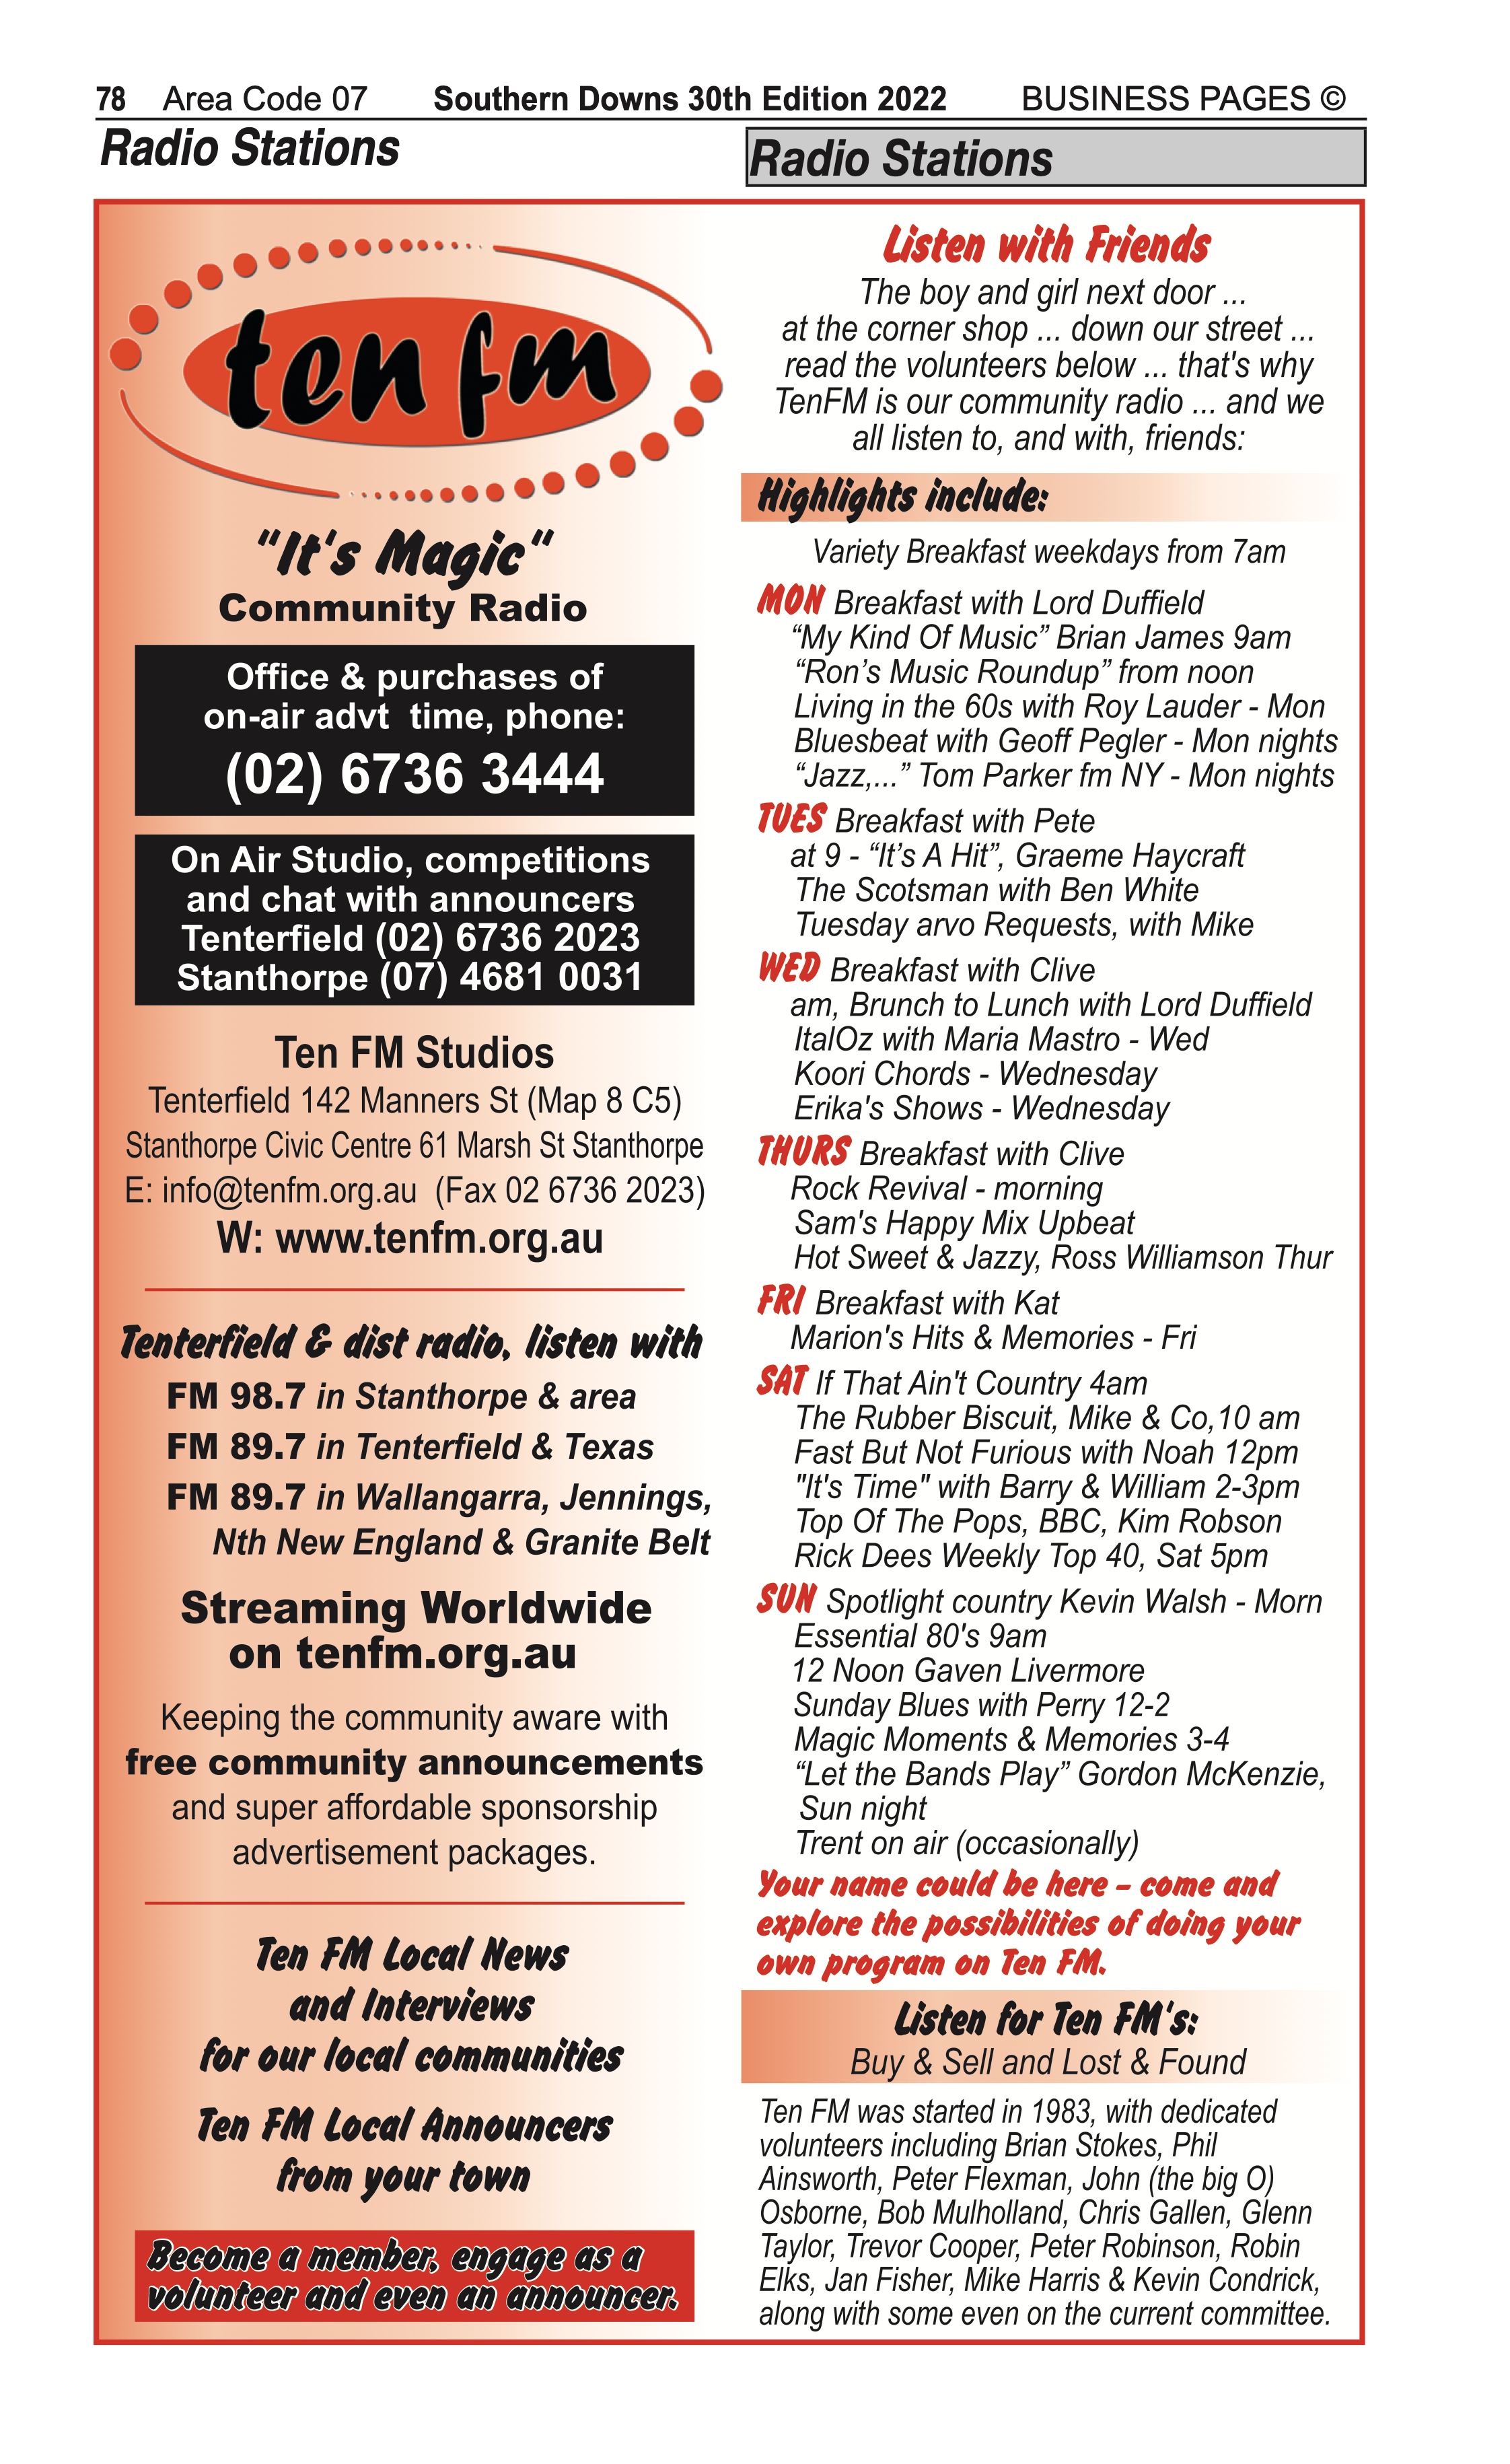 Abshot Physiotherapy | Physiotherapists in Warwick | PBezy Pocket Books local directories - page 78